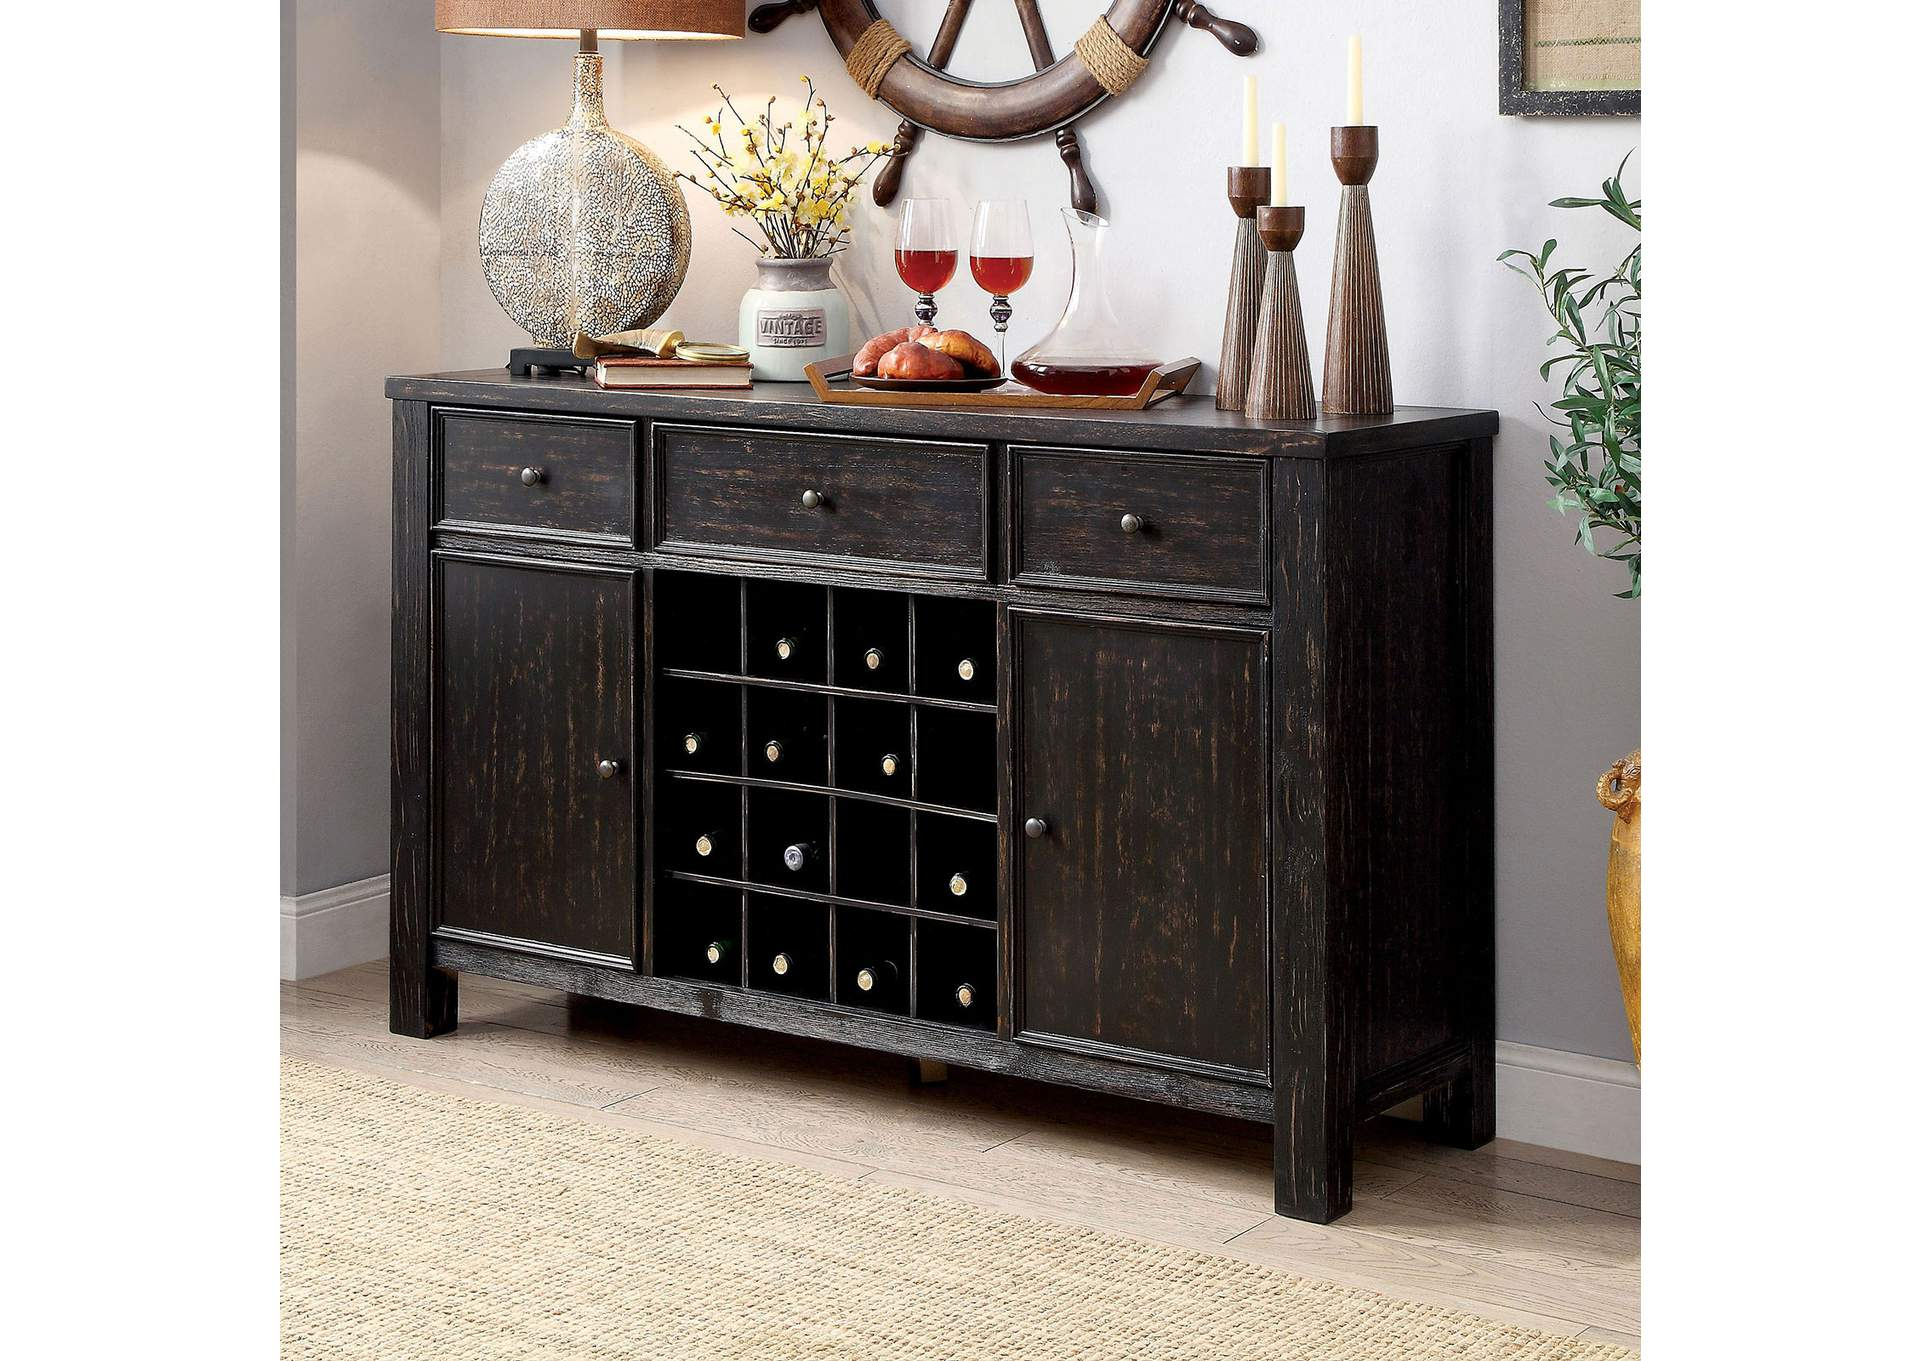 Sania I Antique Black Server,Furniture of America TX